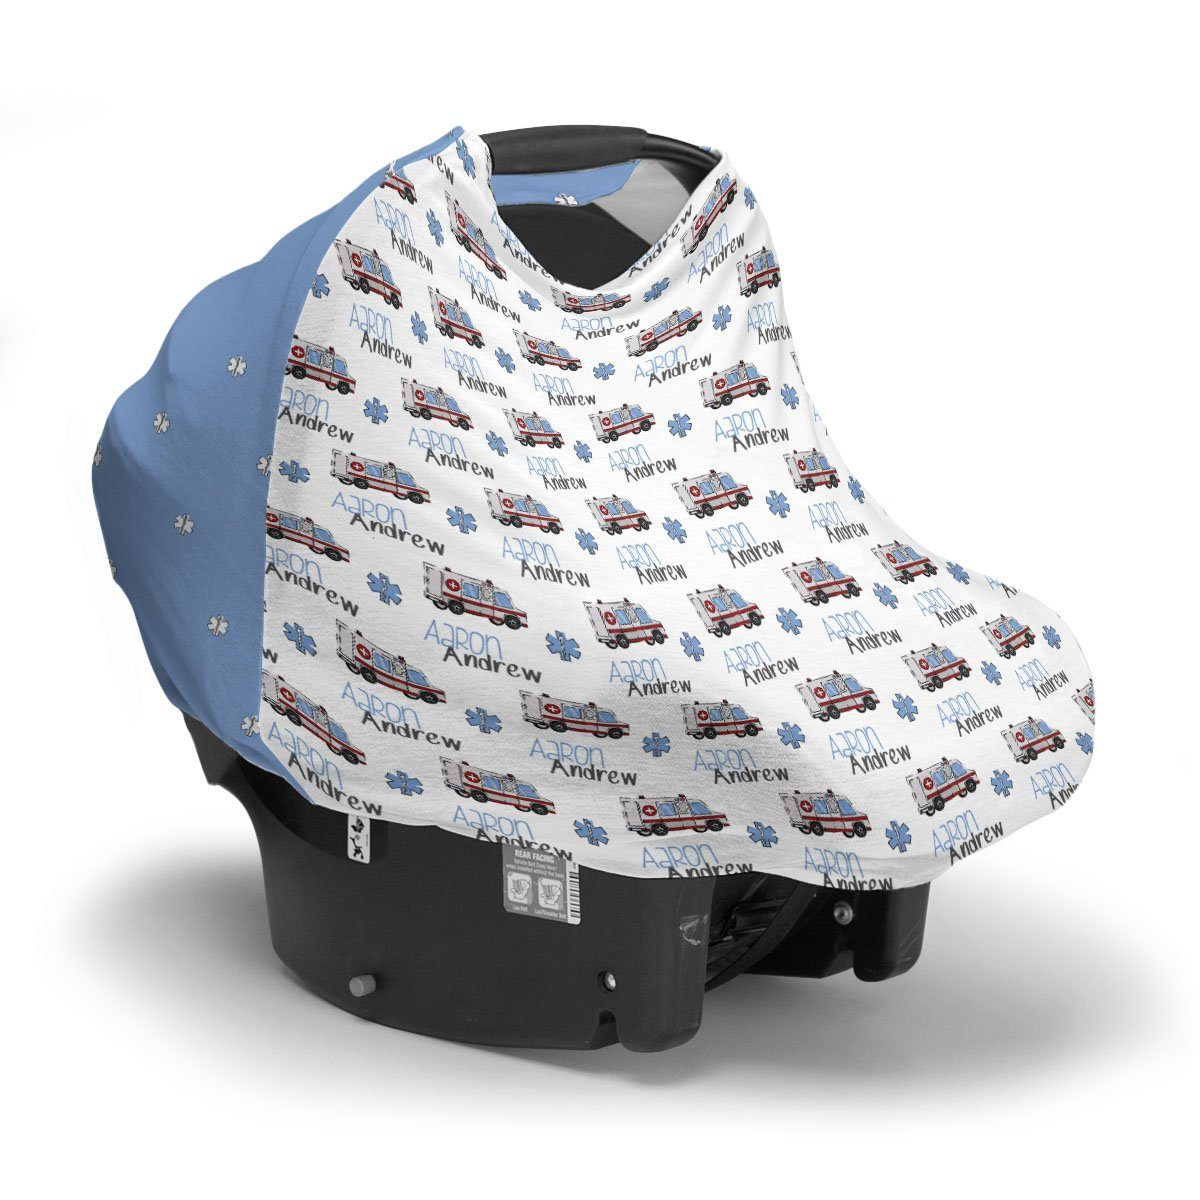 Aaron's Speedy Ambulance | Car Seat Cover (Multi-Use)